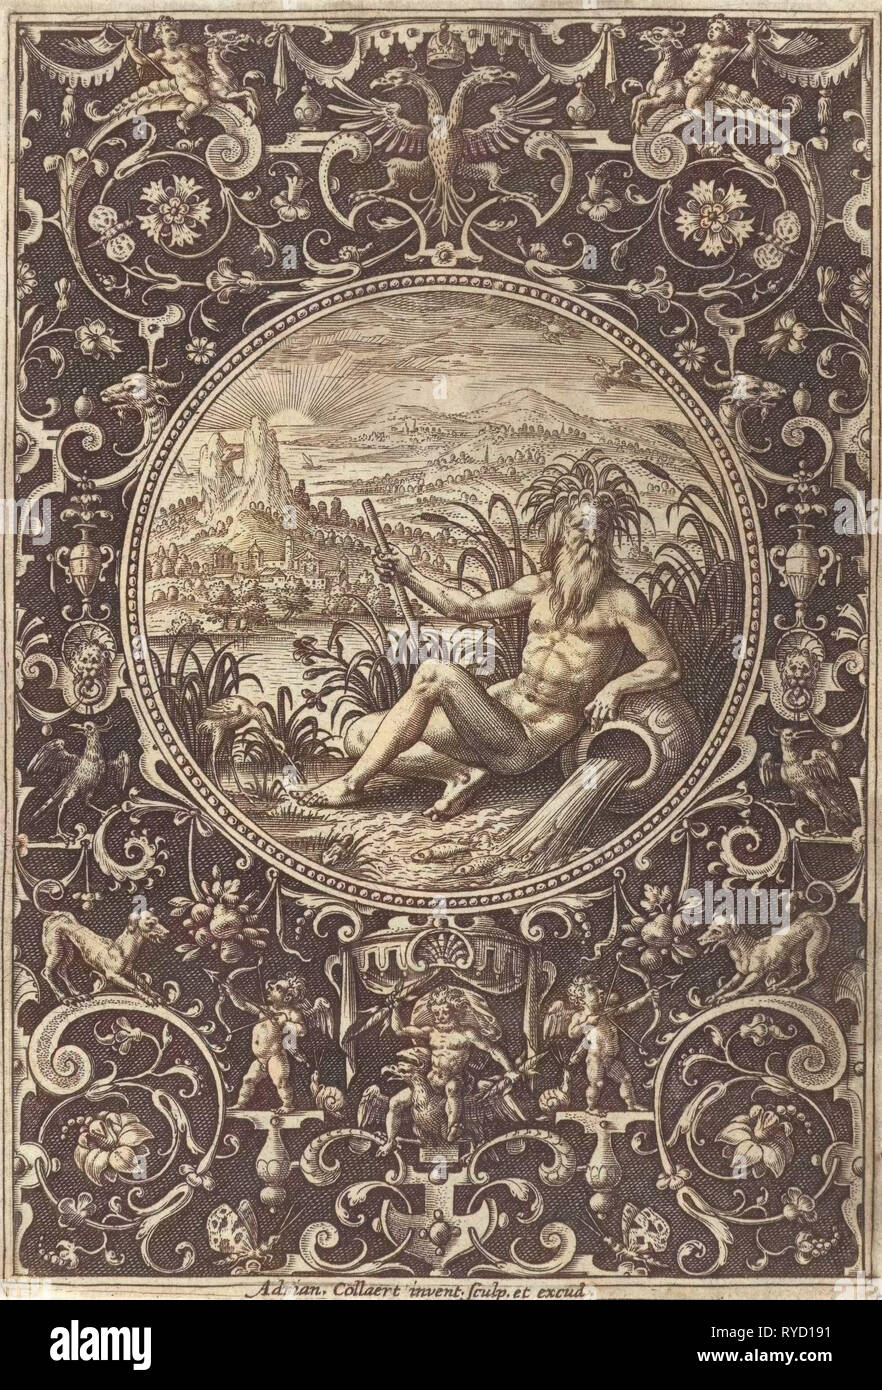 Medallion which a stroomgod, Adriaen Collaert, 1570 - 1618 - Stock Image